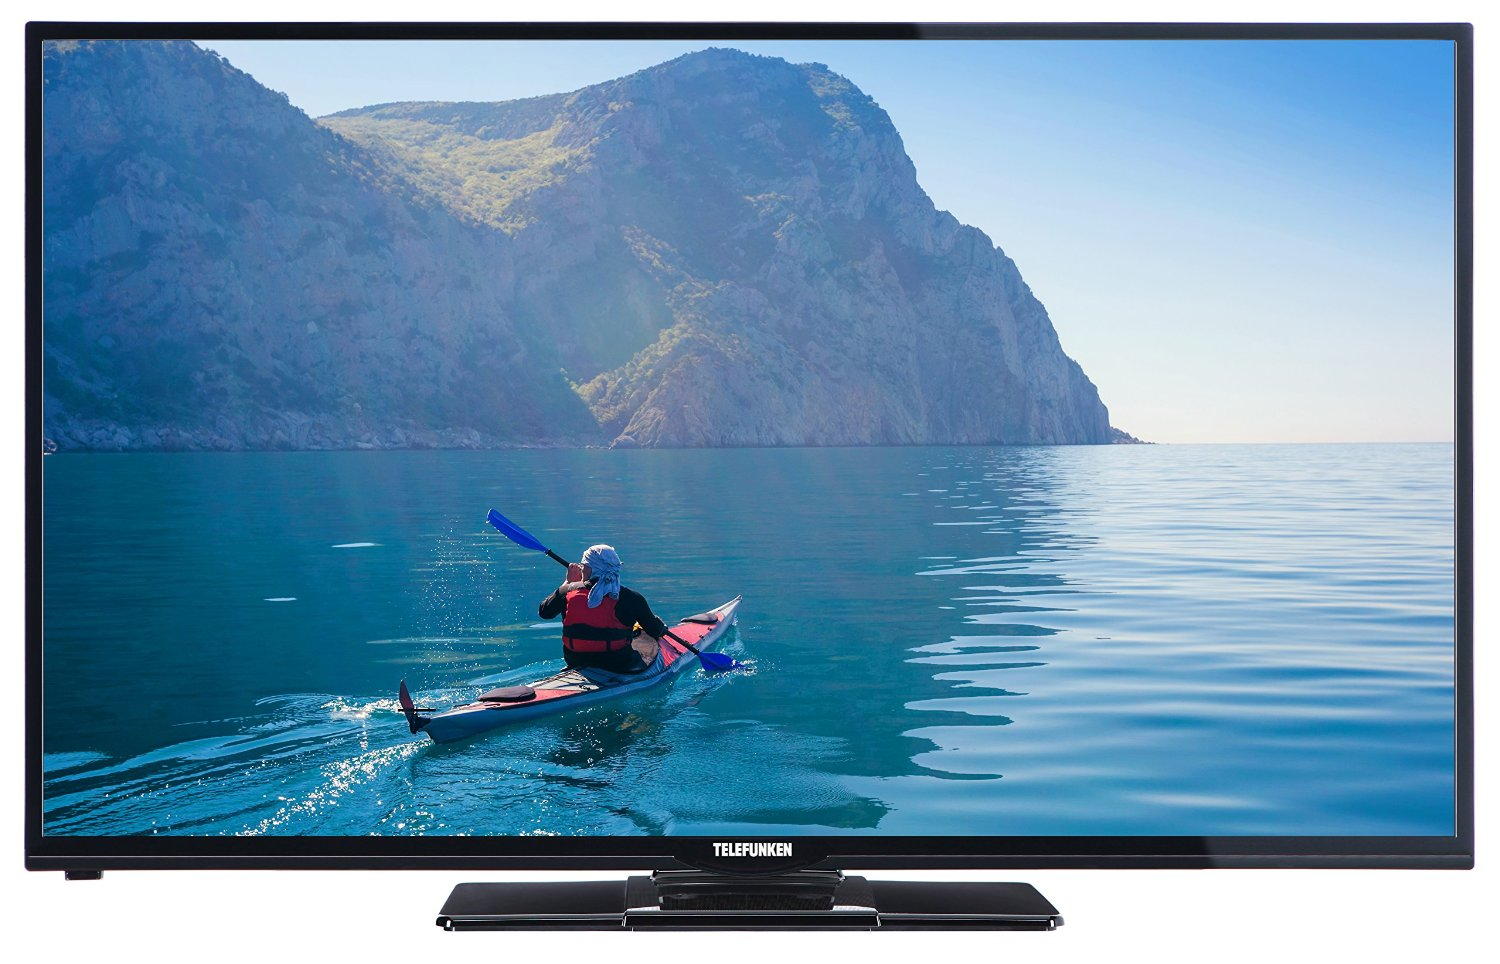 Smart TV im Test: TF. D50F275I3C